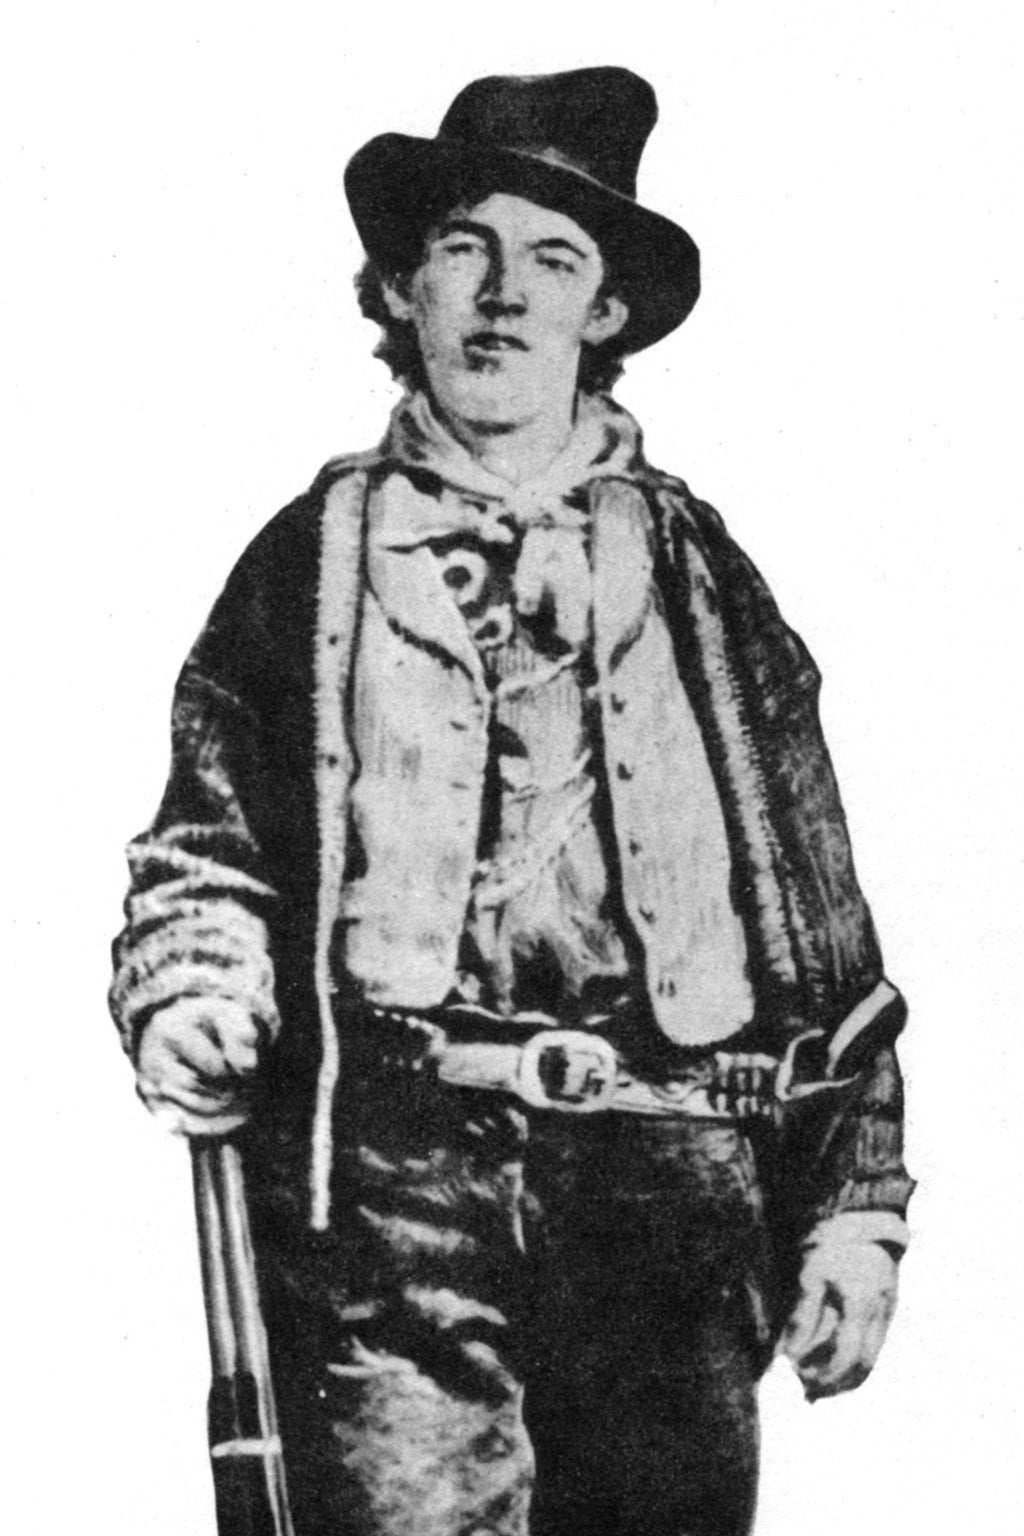 a biography of bill the kid a gunfighter of the old west After this, billy the kid grew into a symbolic figure of the american old west on the run from his enemies and the law, the kid had made a living by stealing horses and cattle, until his arrest.